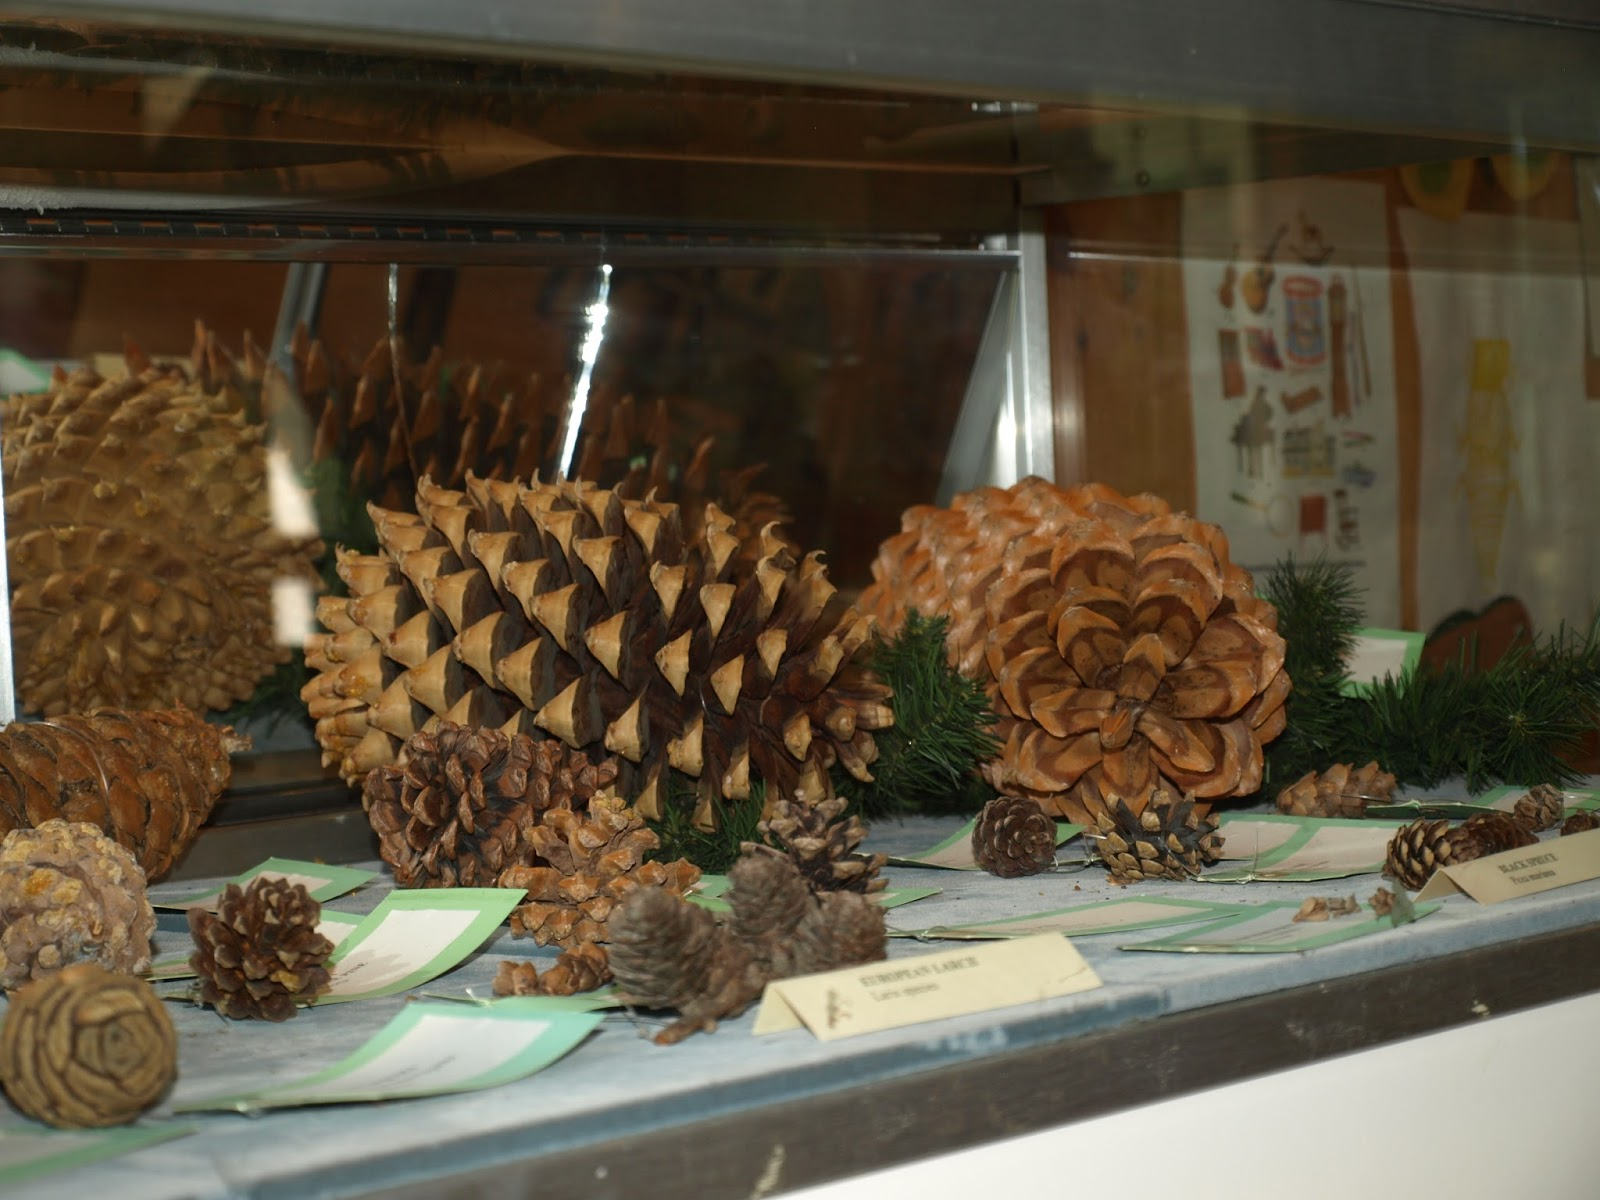 Why Are There So Many Pine Cones This Year?